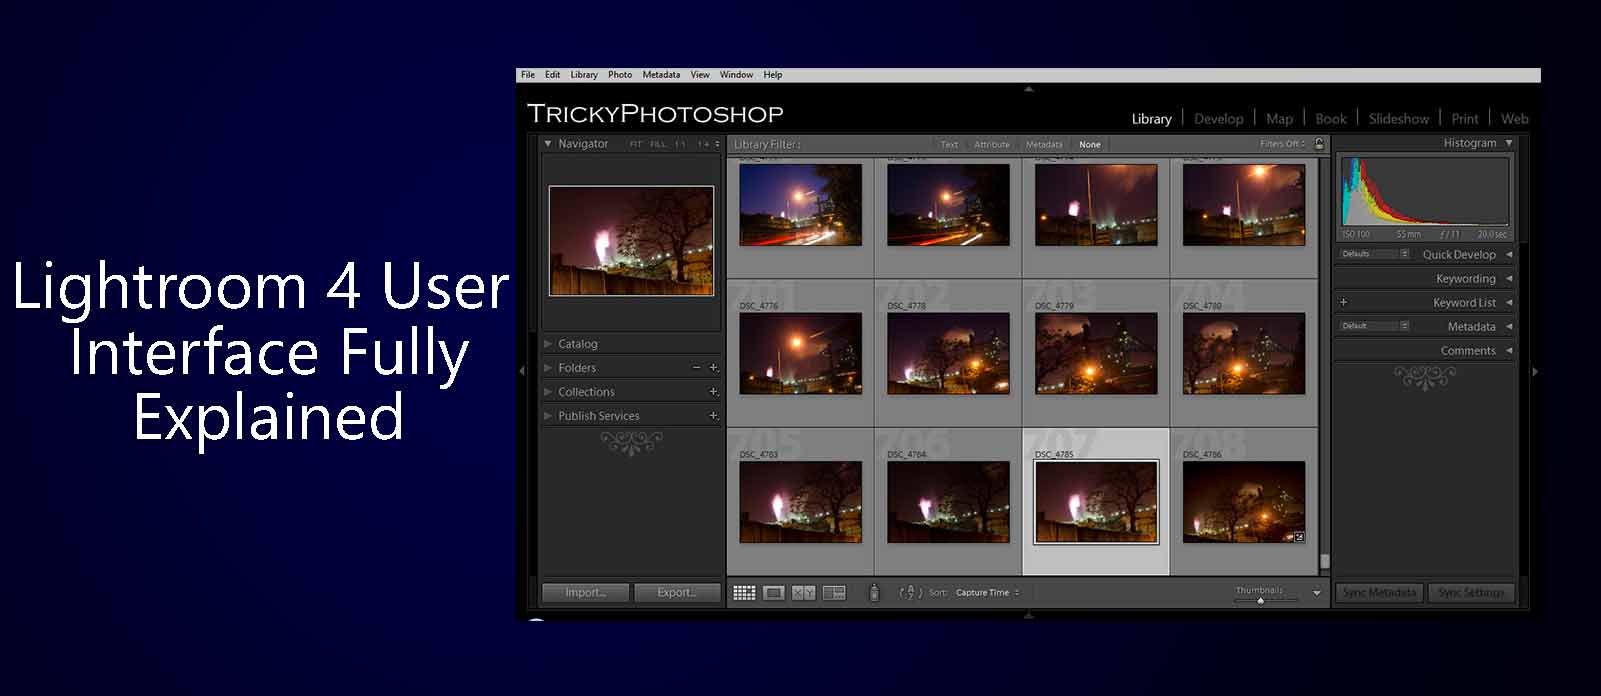 Lightroom 4 User Interface Explained | TrickyPhotoshop